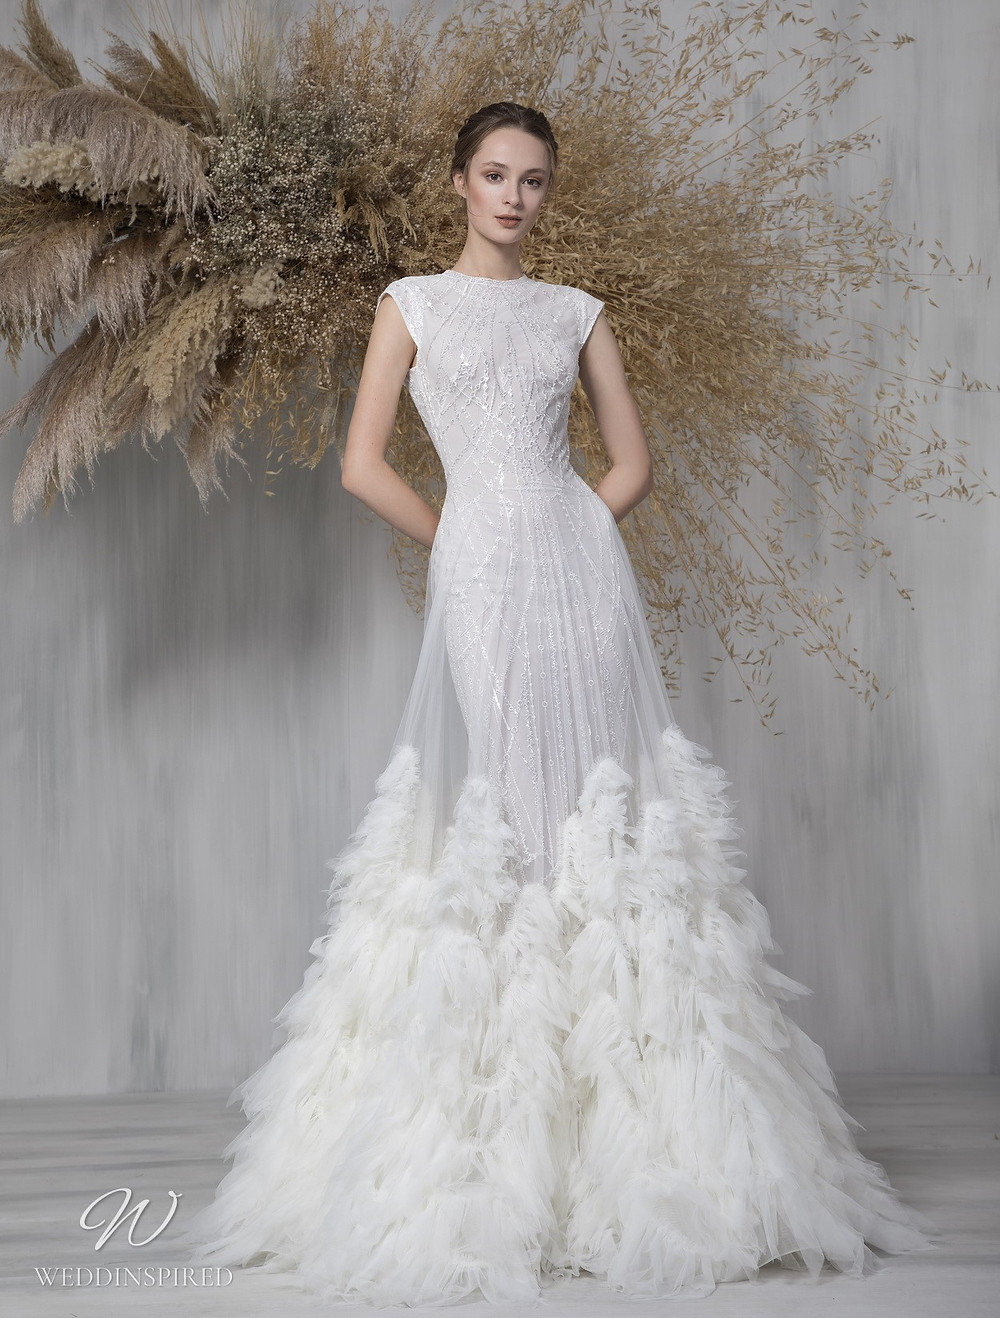 A Tony Ward 2021 mesh and tulle mermaid wedding dress with a high neck, cap sleeves and a feather look skirt